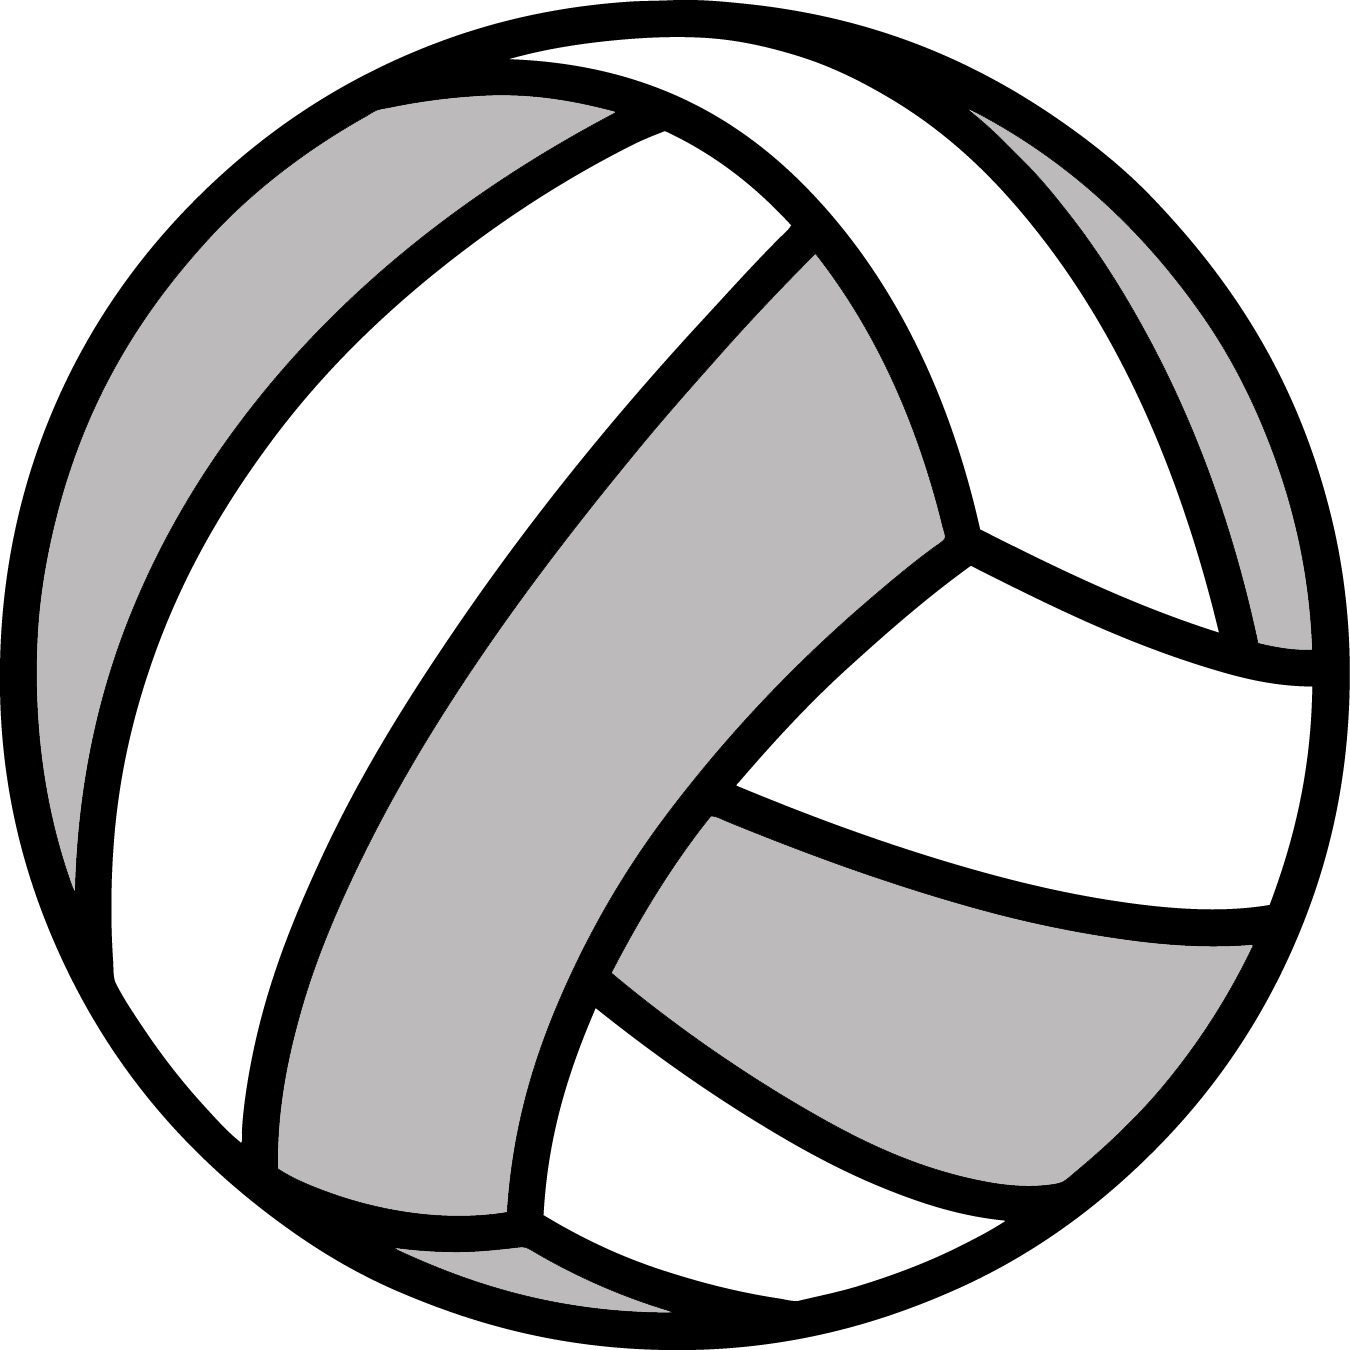 Cool Volleyball Clip Art